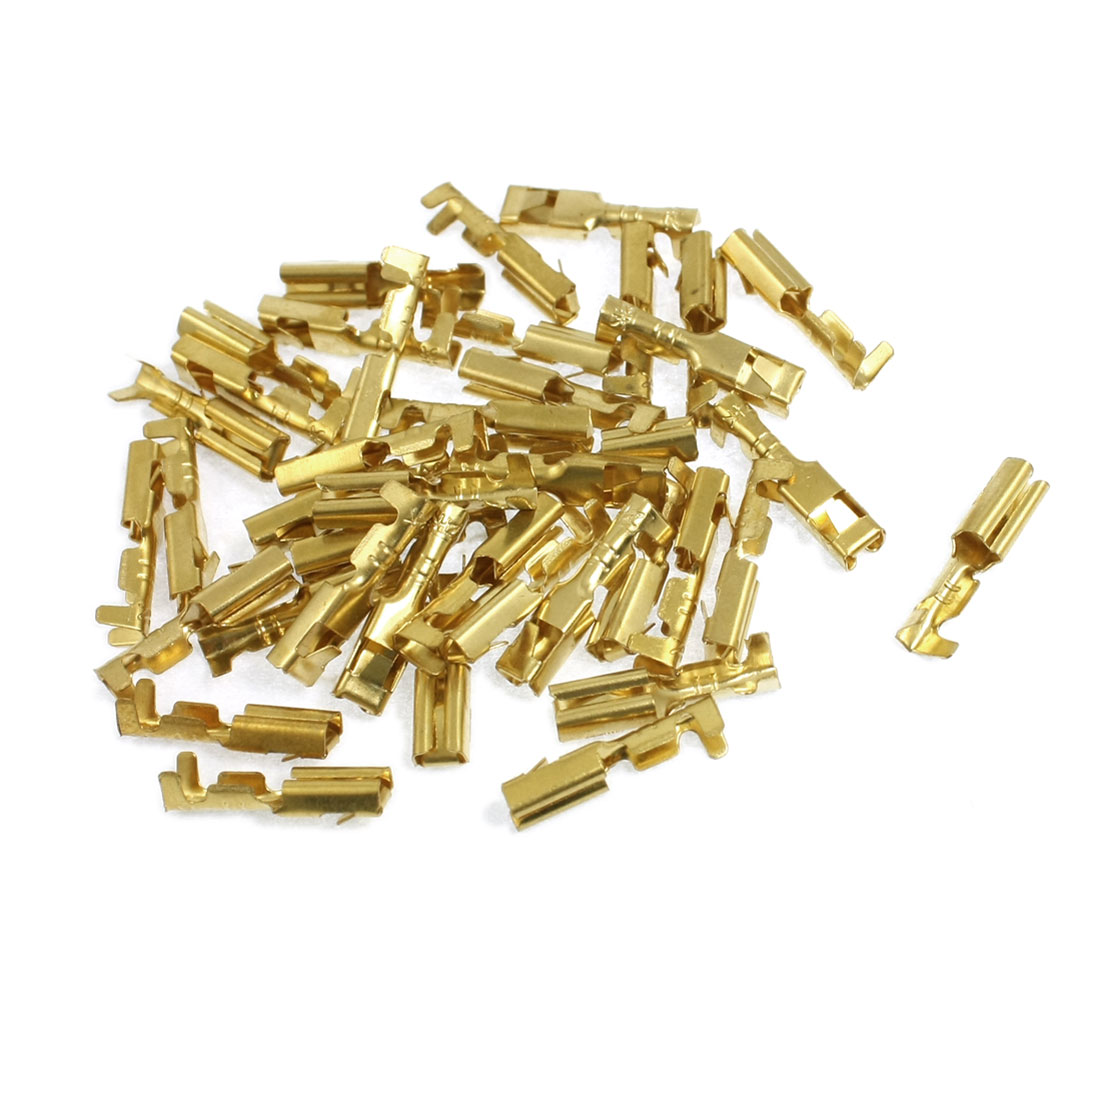 40 Pcs 3mm Diameter Wire Brass Female Crimp Terminal Connectors